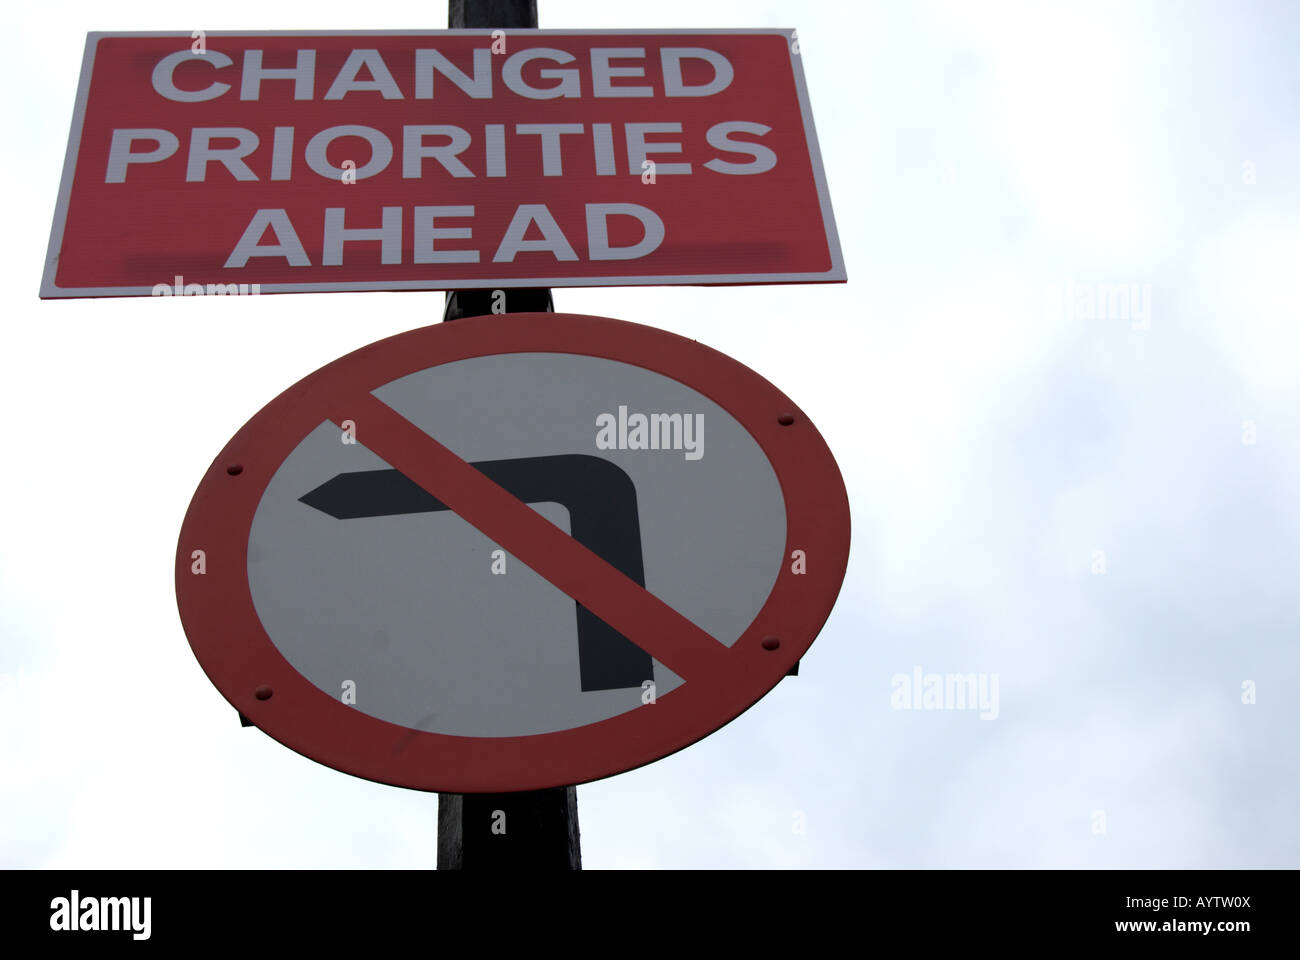 british road sign fixed to to a lamppost indicating no left turn and stating changed priorities ahead - Stock Image